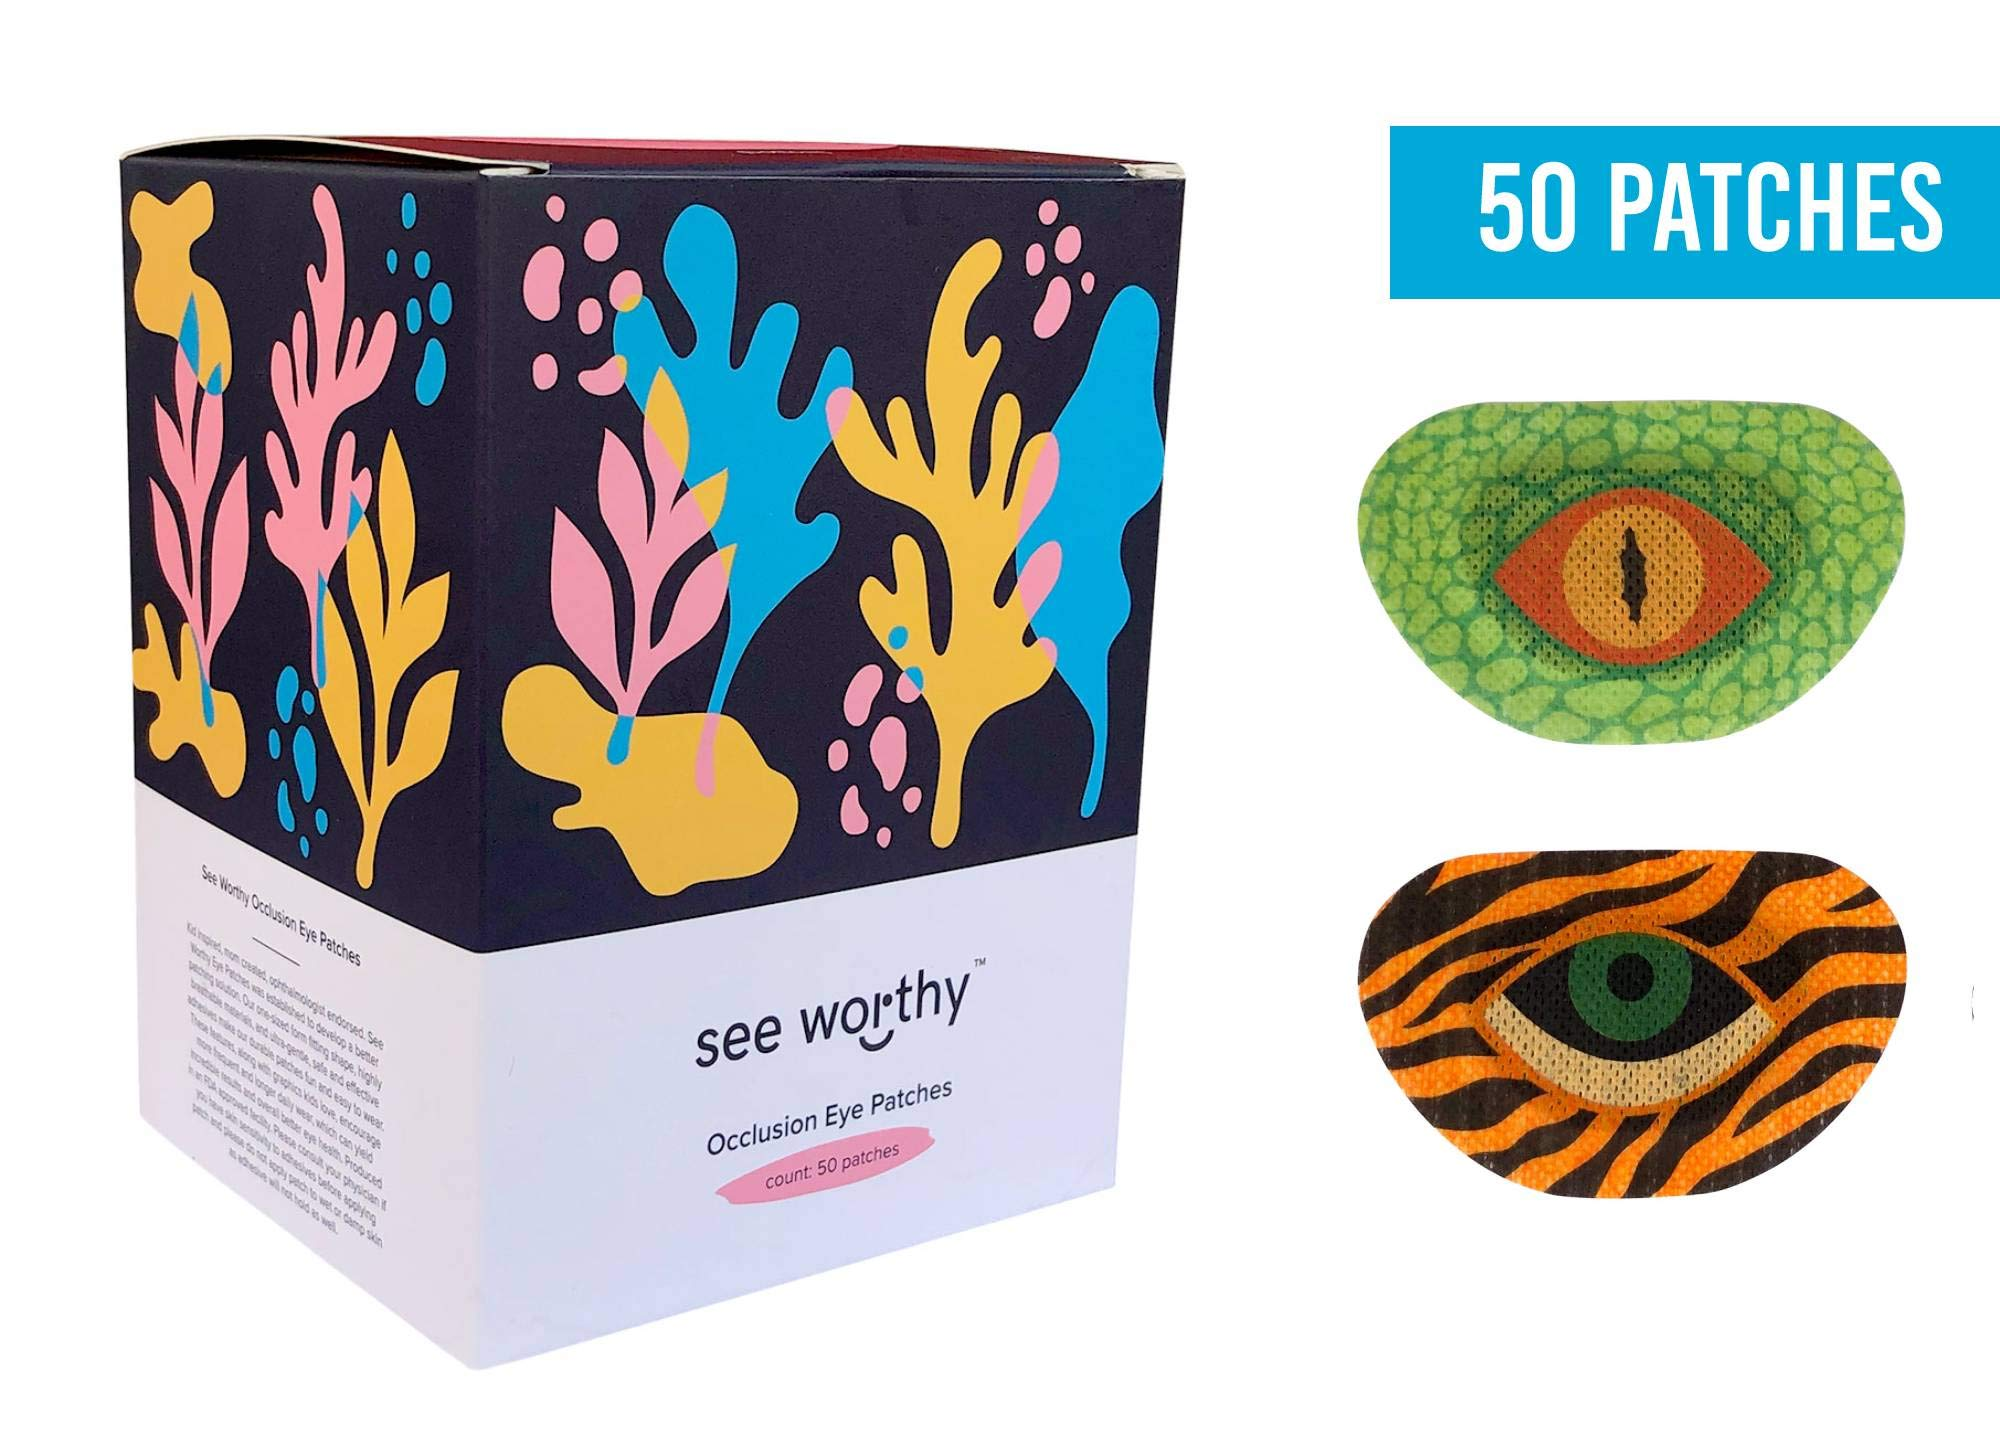 See Worthy Tiger and Lizard Adhesive Kids Eye Patches, Innovative Shape, Smart Adhesive Technology, Breathable Material and Fun Designs, (50 per Box) (Regular Size)